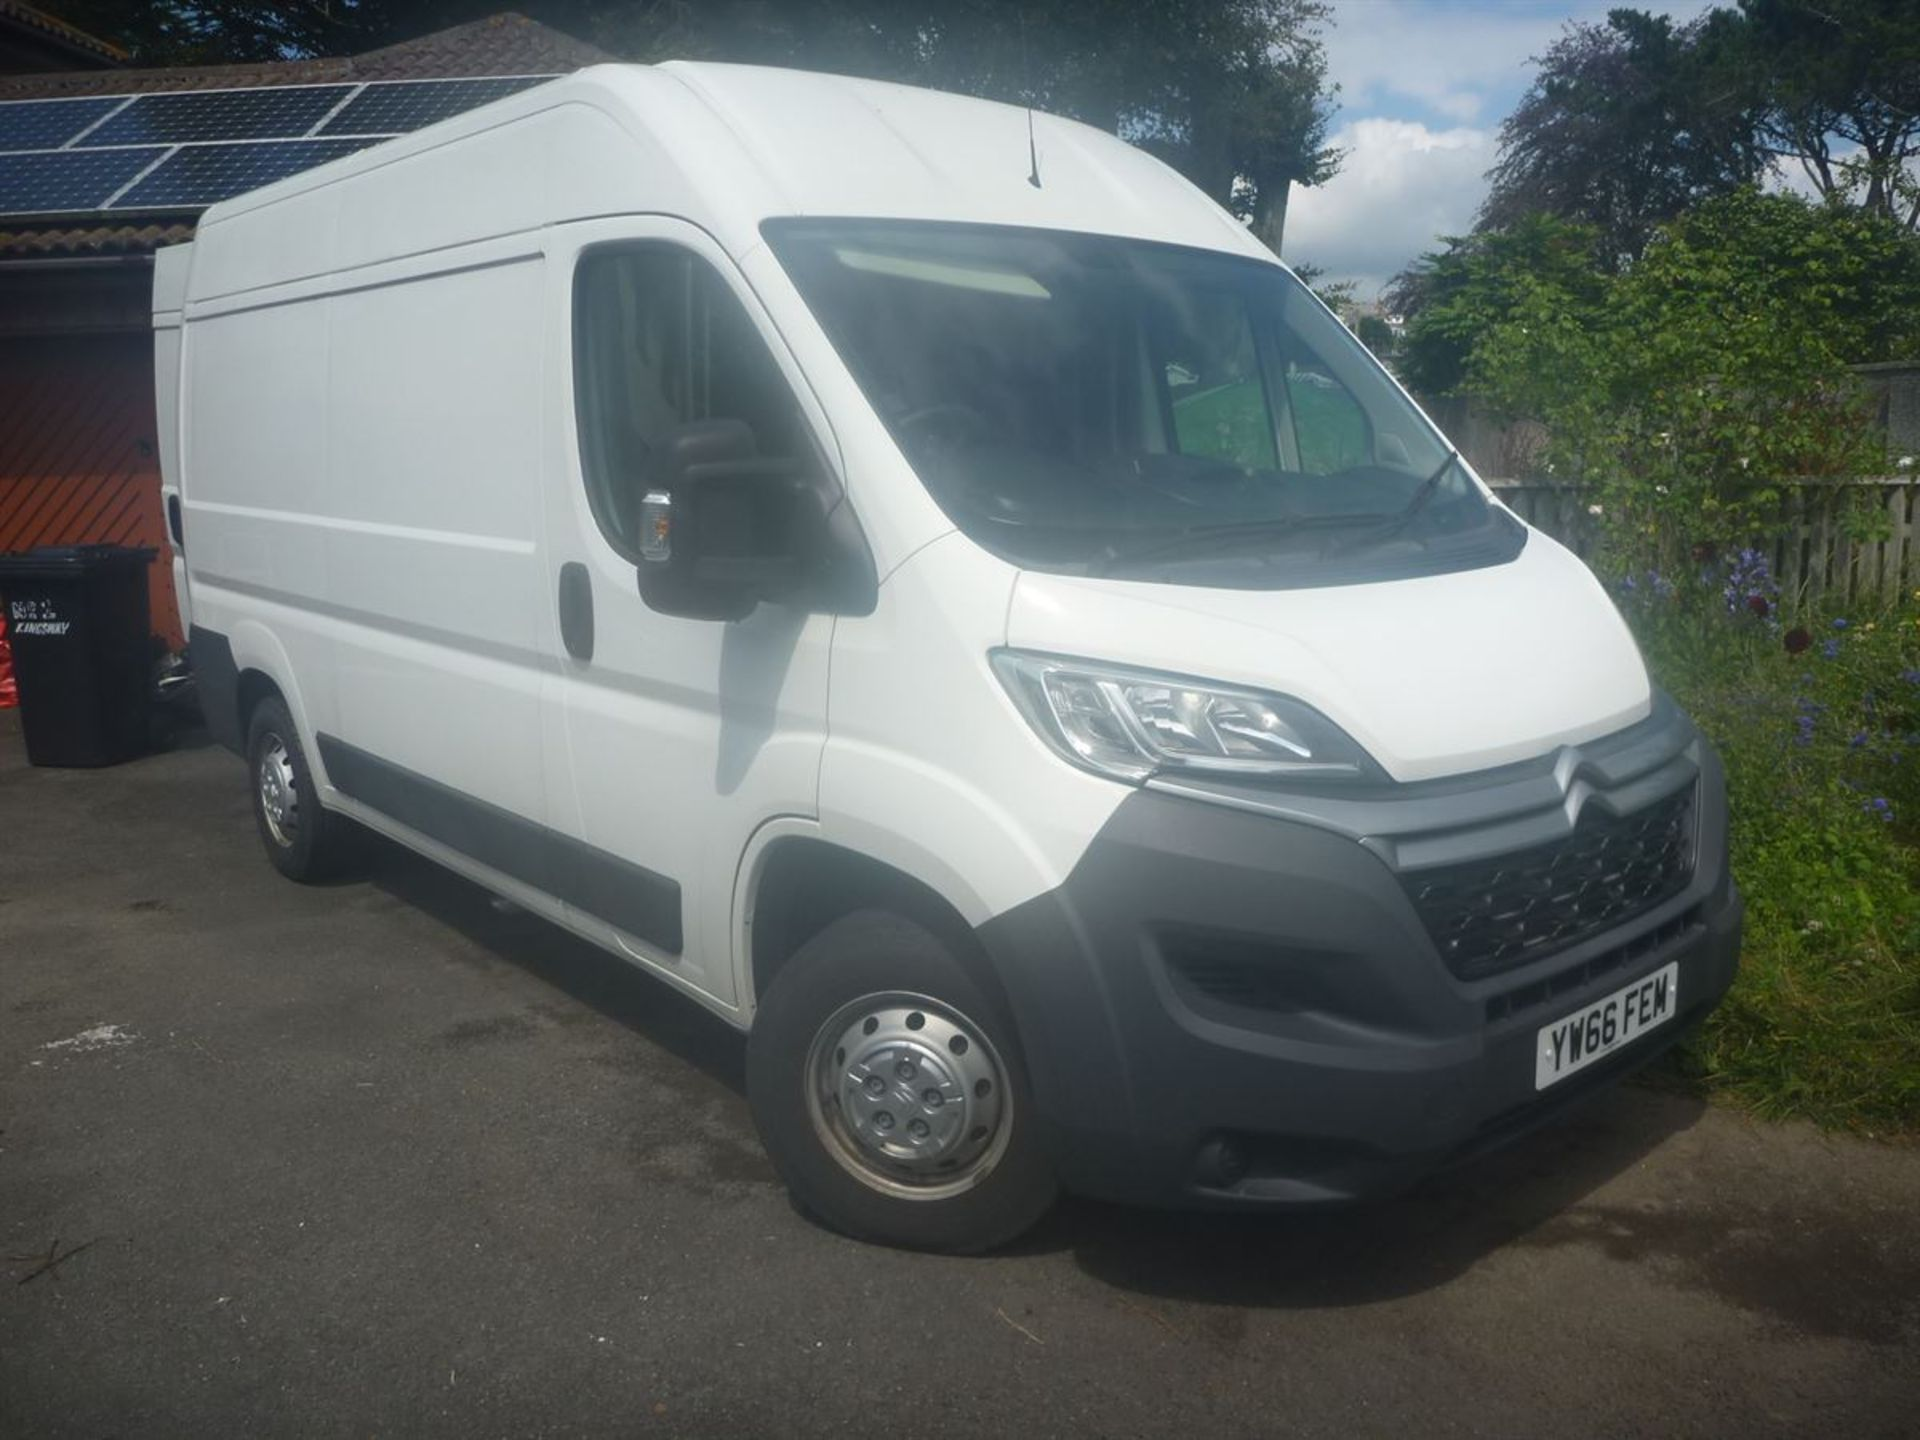 Lot 1 - Full Assets of Small Cleaning Company go include Duct Cleaning Equipment and Citroen Relay Van